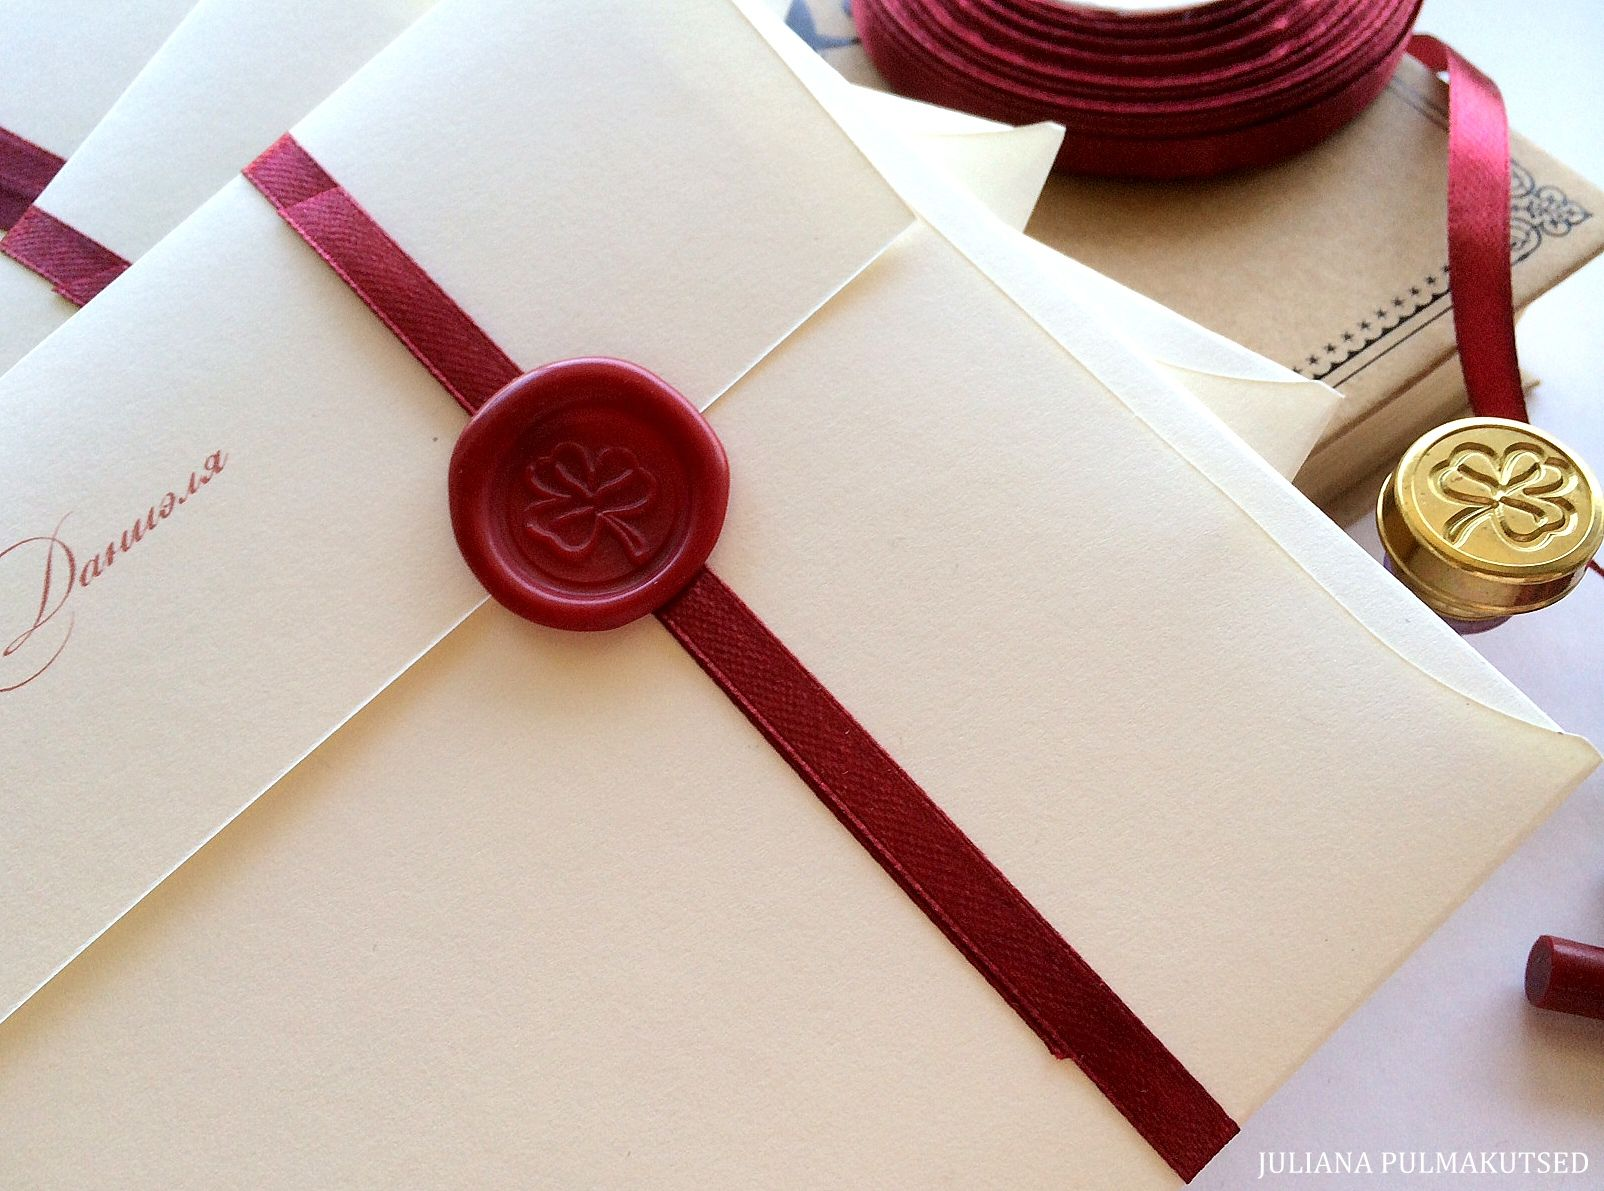 Vahatempliga pulmakutsedWax sealed wedding invitations | Girl study ...